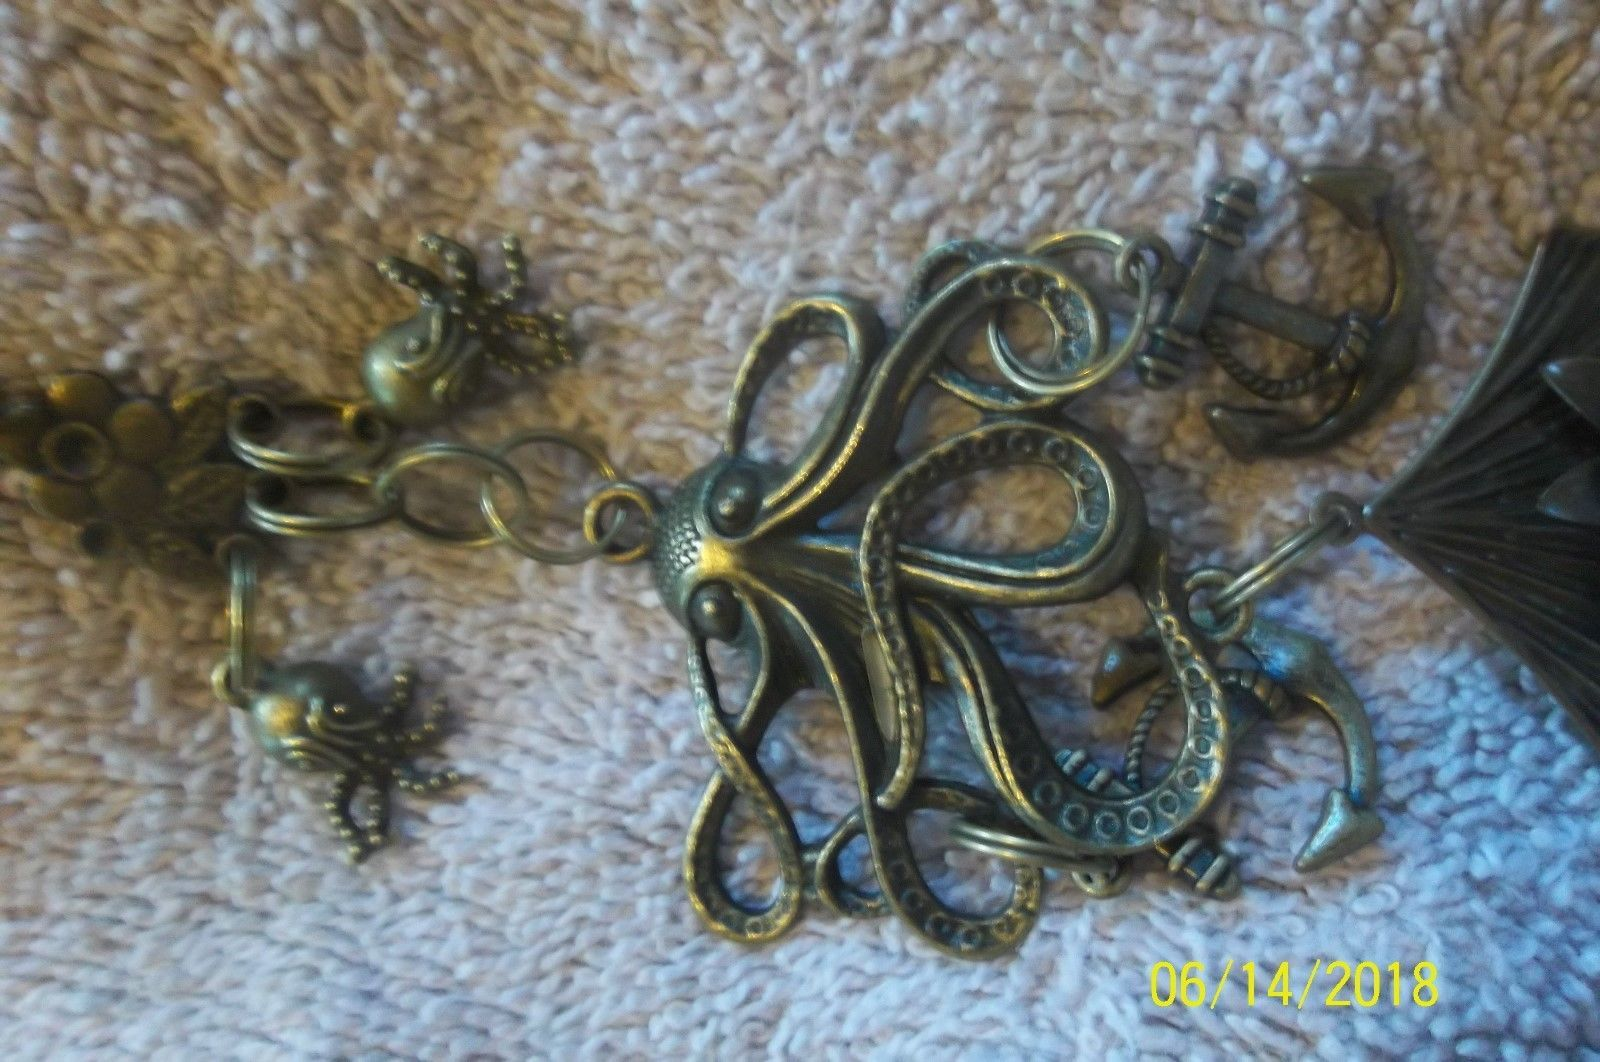 #purse jewelry bronze color keychain backpack filigree charms lot of 3 floral 21 image 10